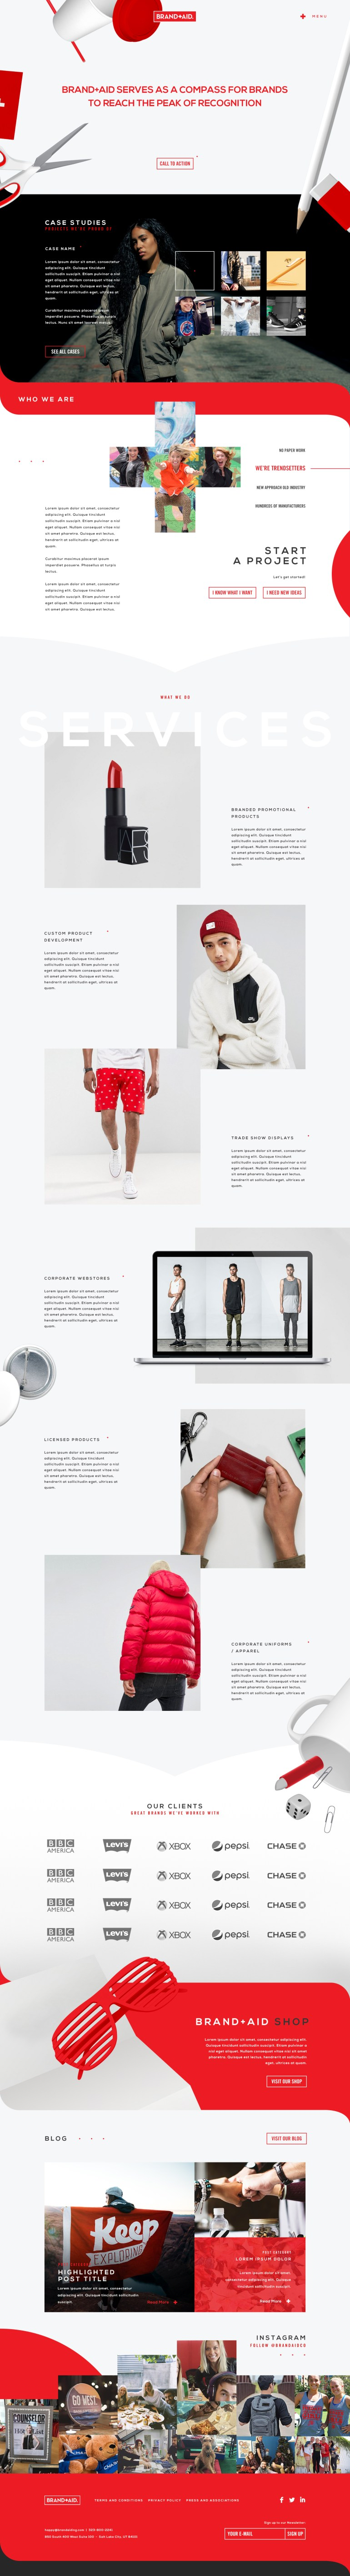 eat_brand+aid_website_v10